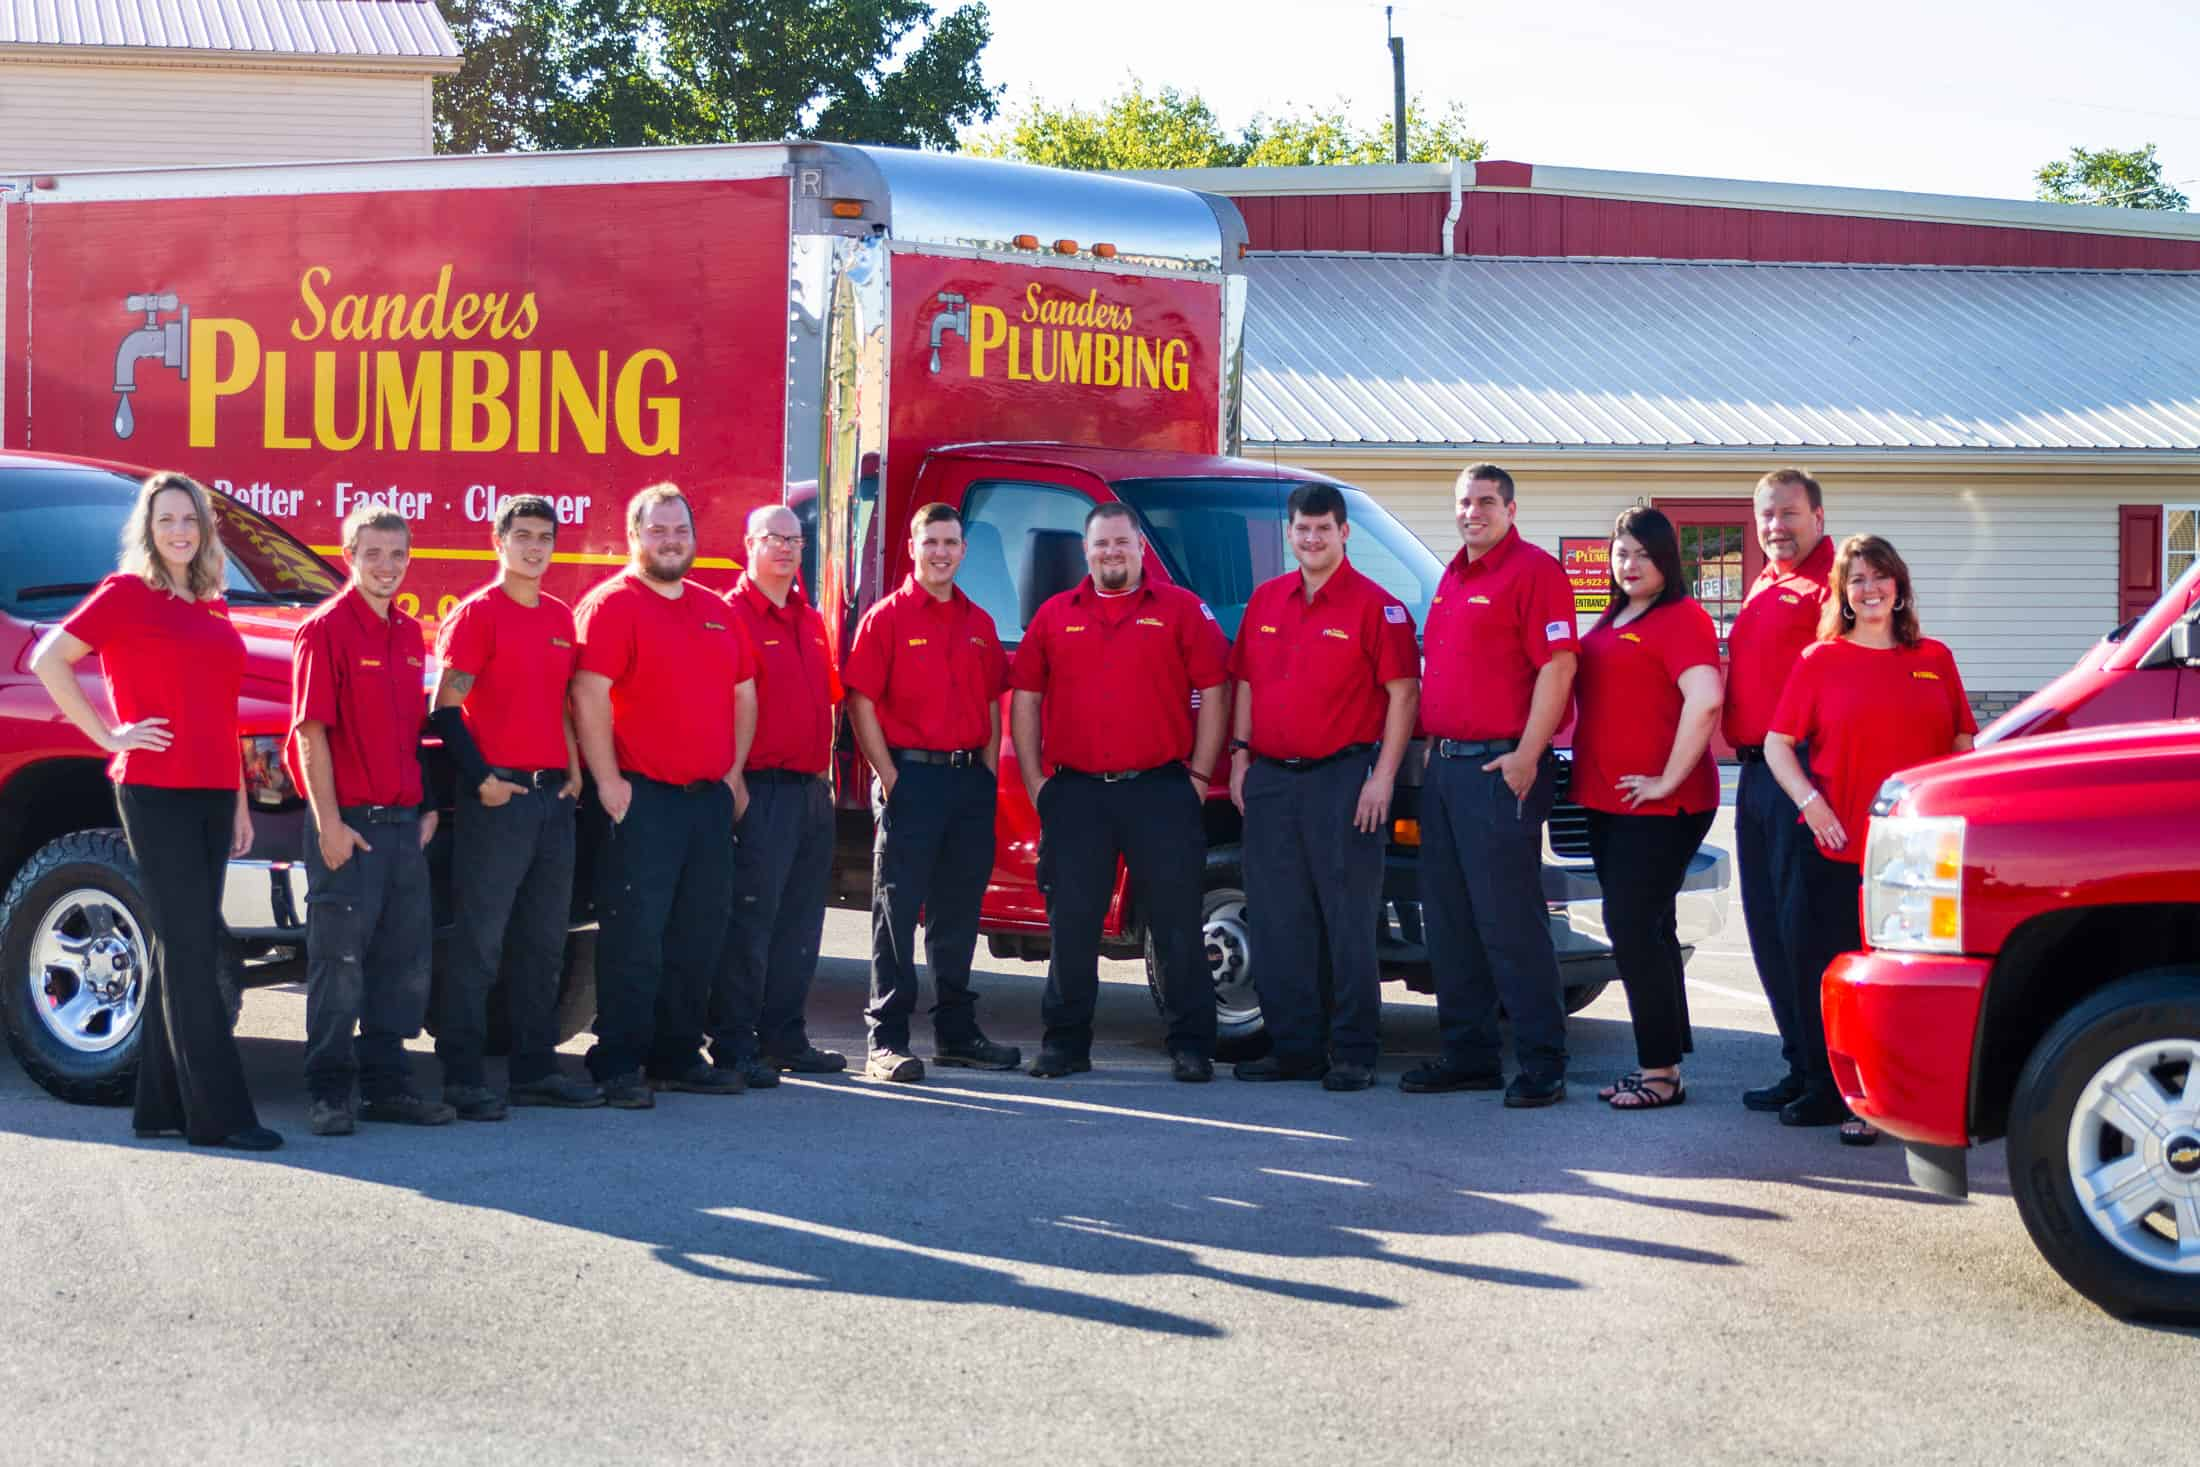 Plumber in Knoxville, TN | Sanders Plumbing Company | Staff